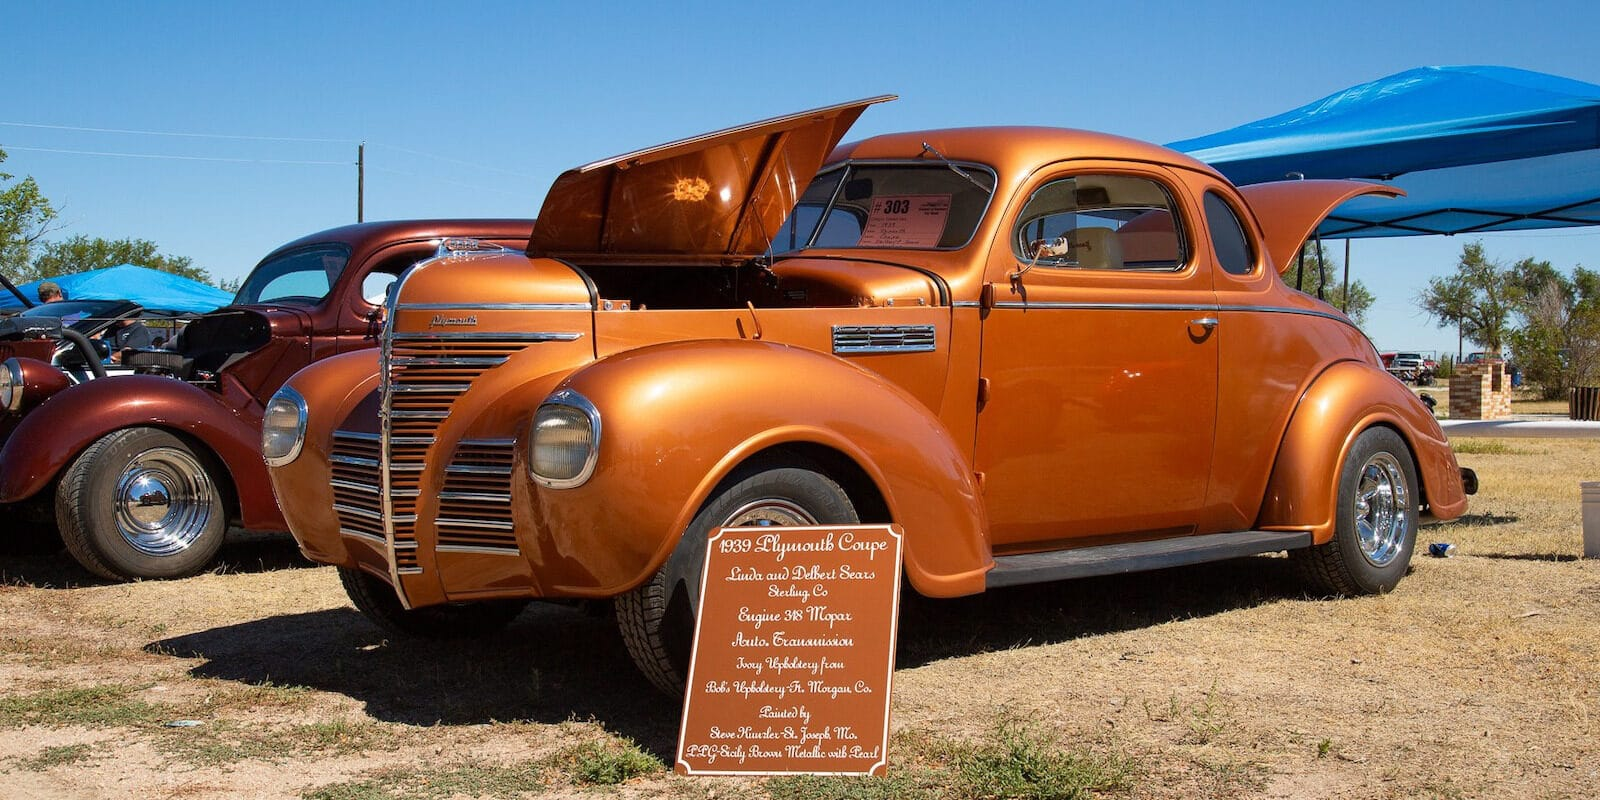 Image of a 1939 Plymouth Coup at the Friend of Raymer Car Show in Colorado